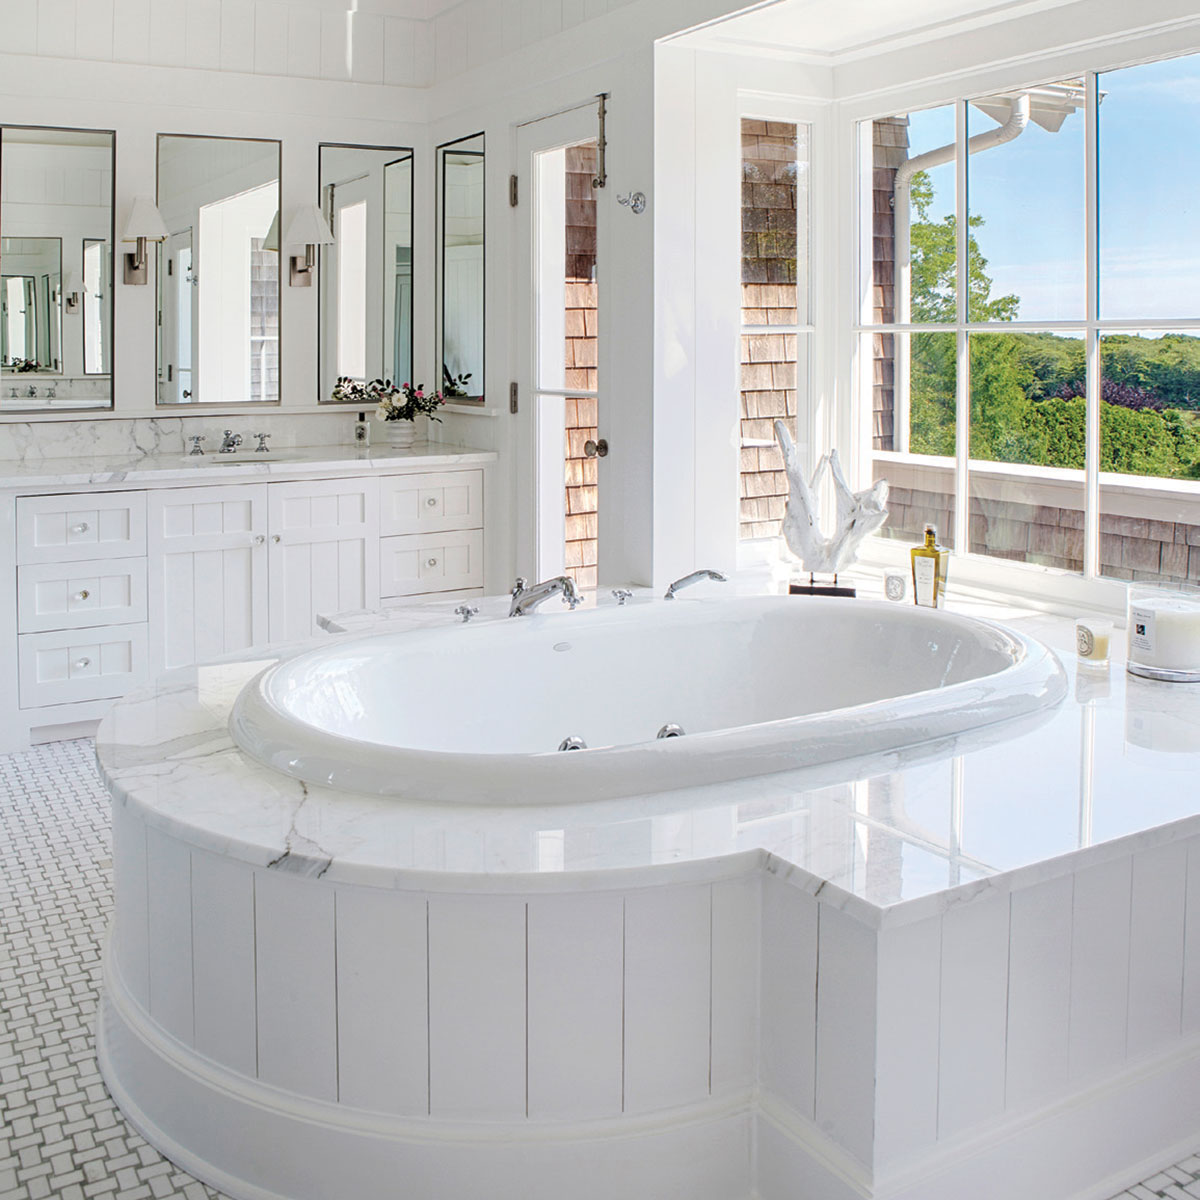 bridgehampton-bathroom.jpg